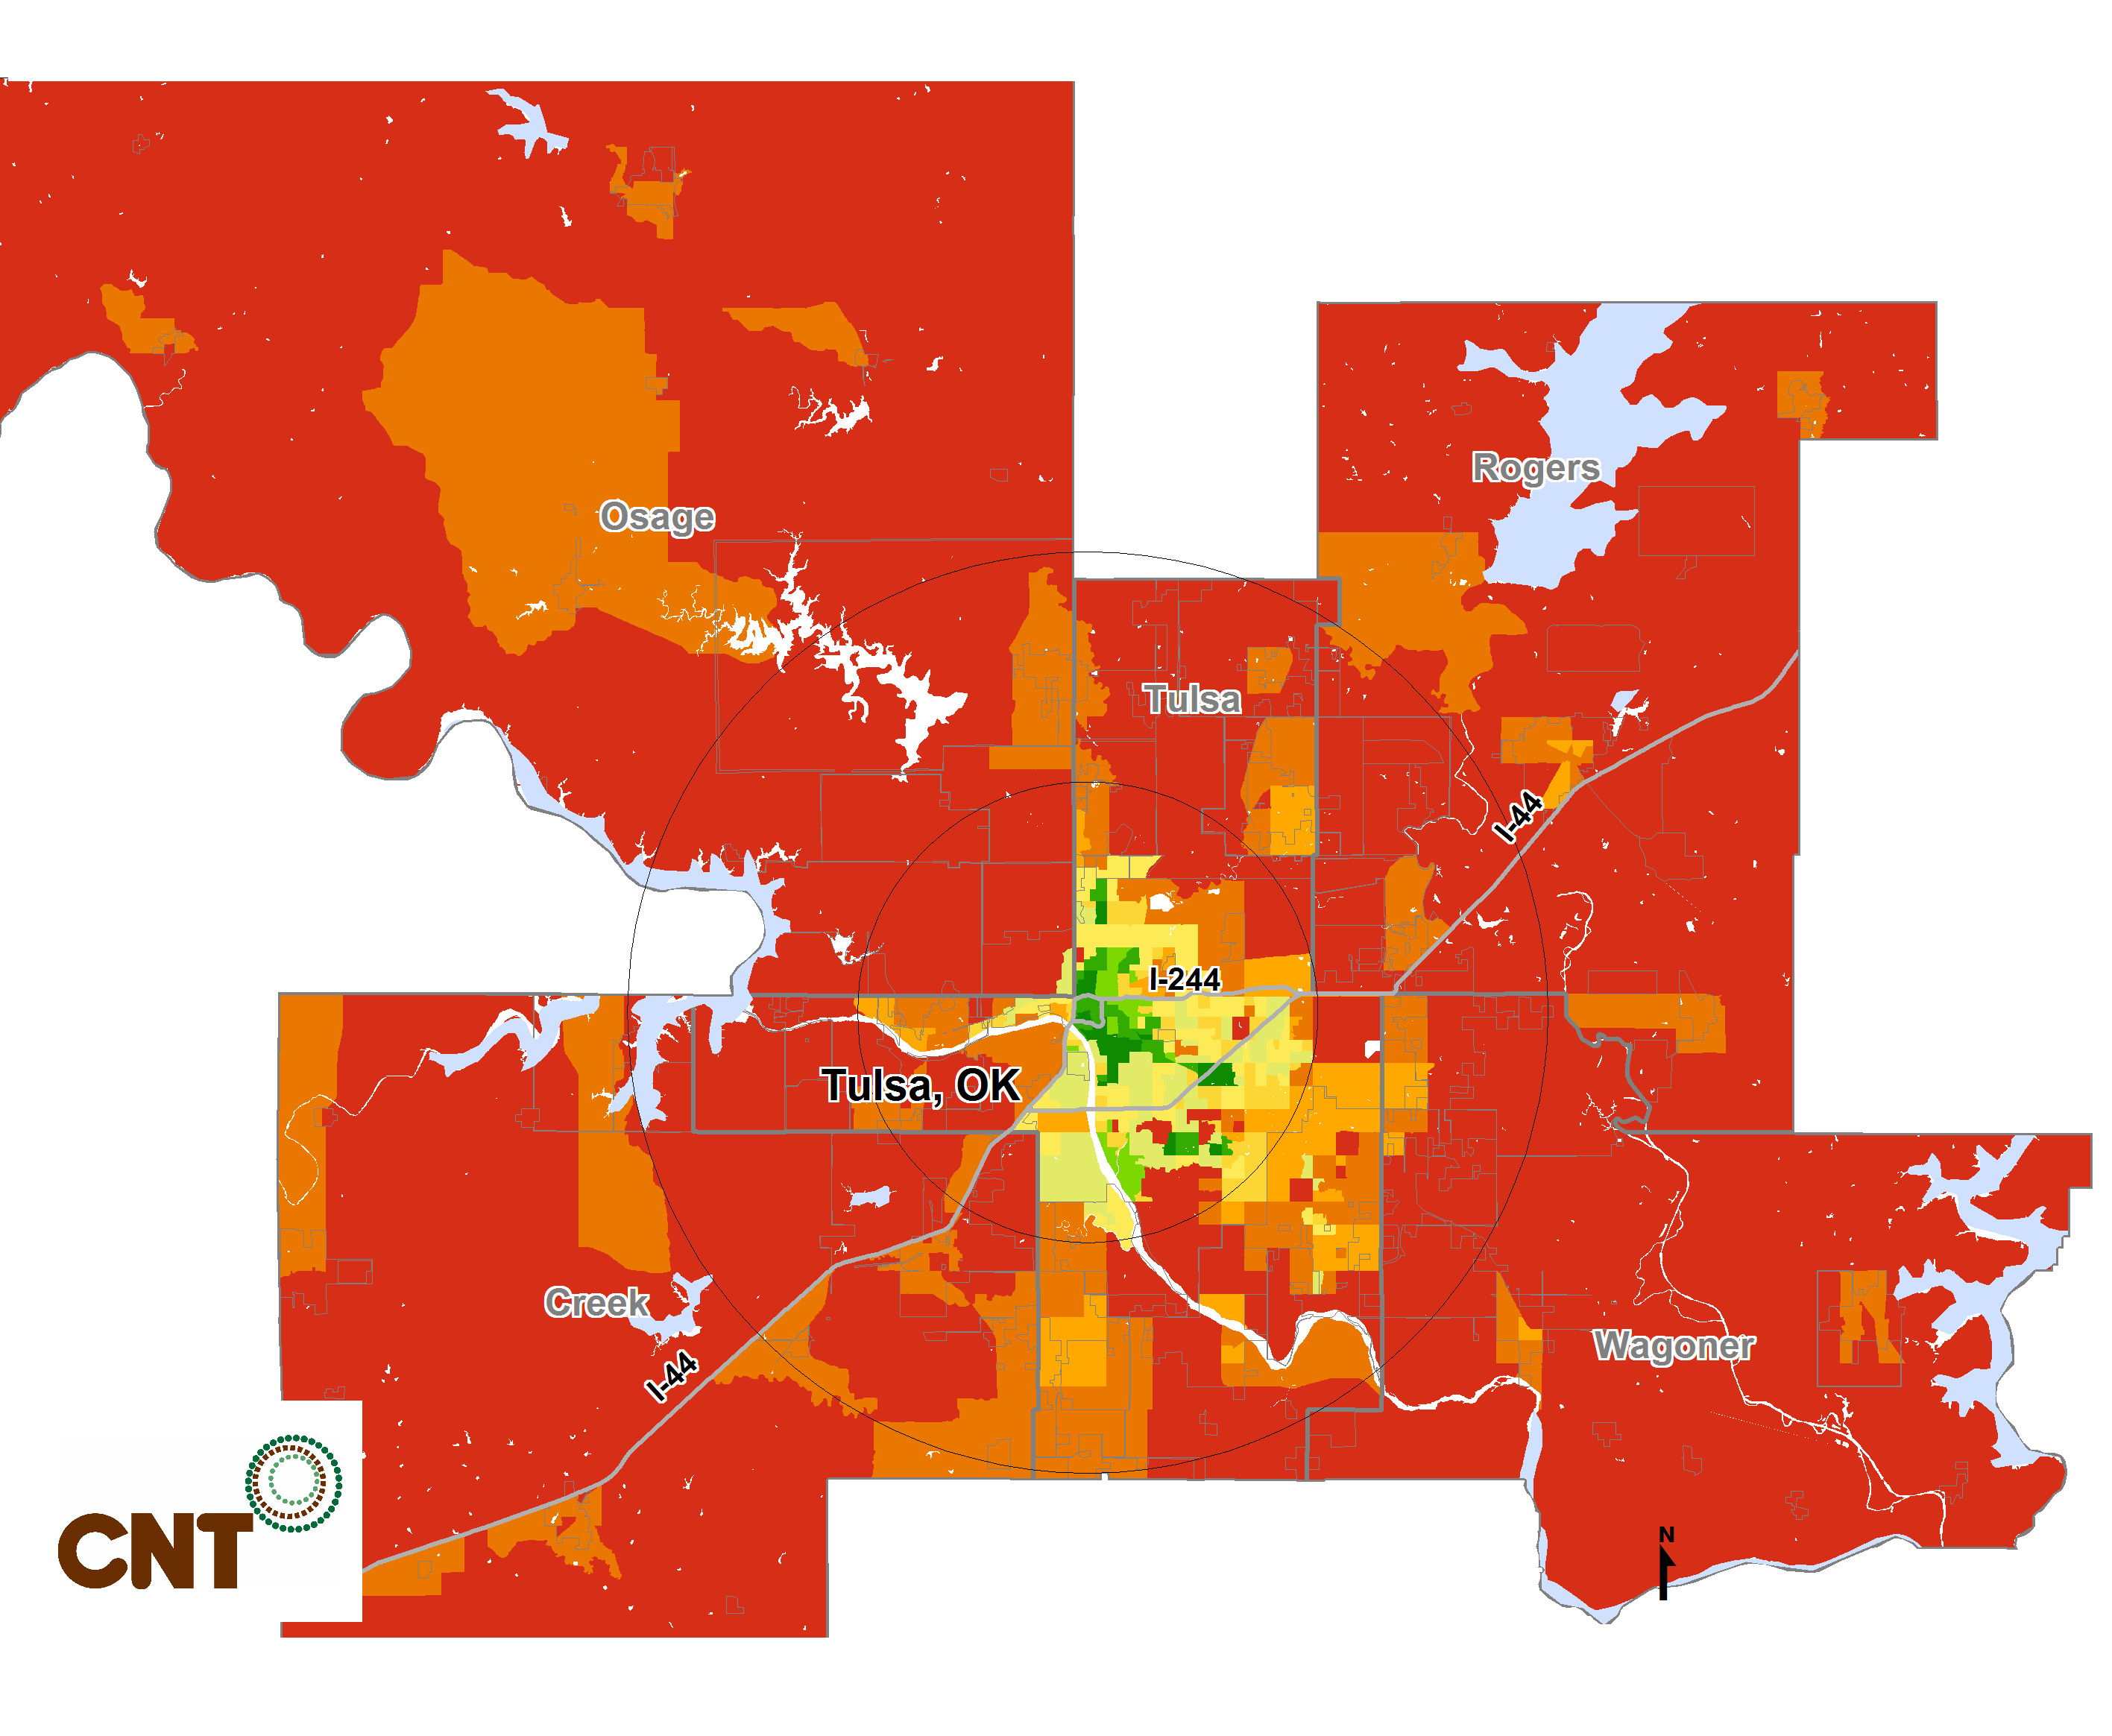 METROPOLITAN TRANSIT ACCESS CASE STUDIES Tulsa, Oklahoma in 2015 As this map shows, the share of the population likely to see mobility options shrink with time grows rapidly across metro Tulsa, as